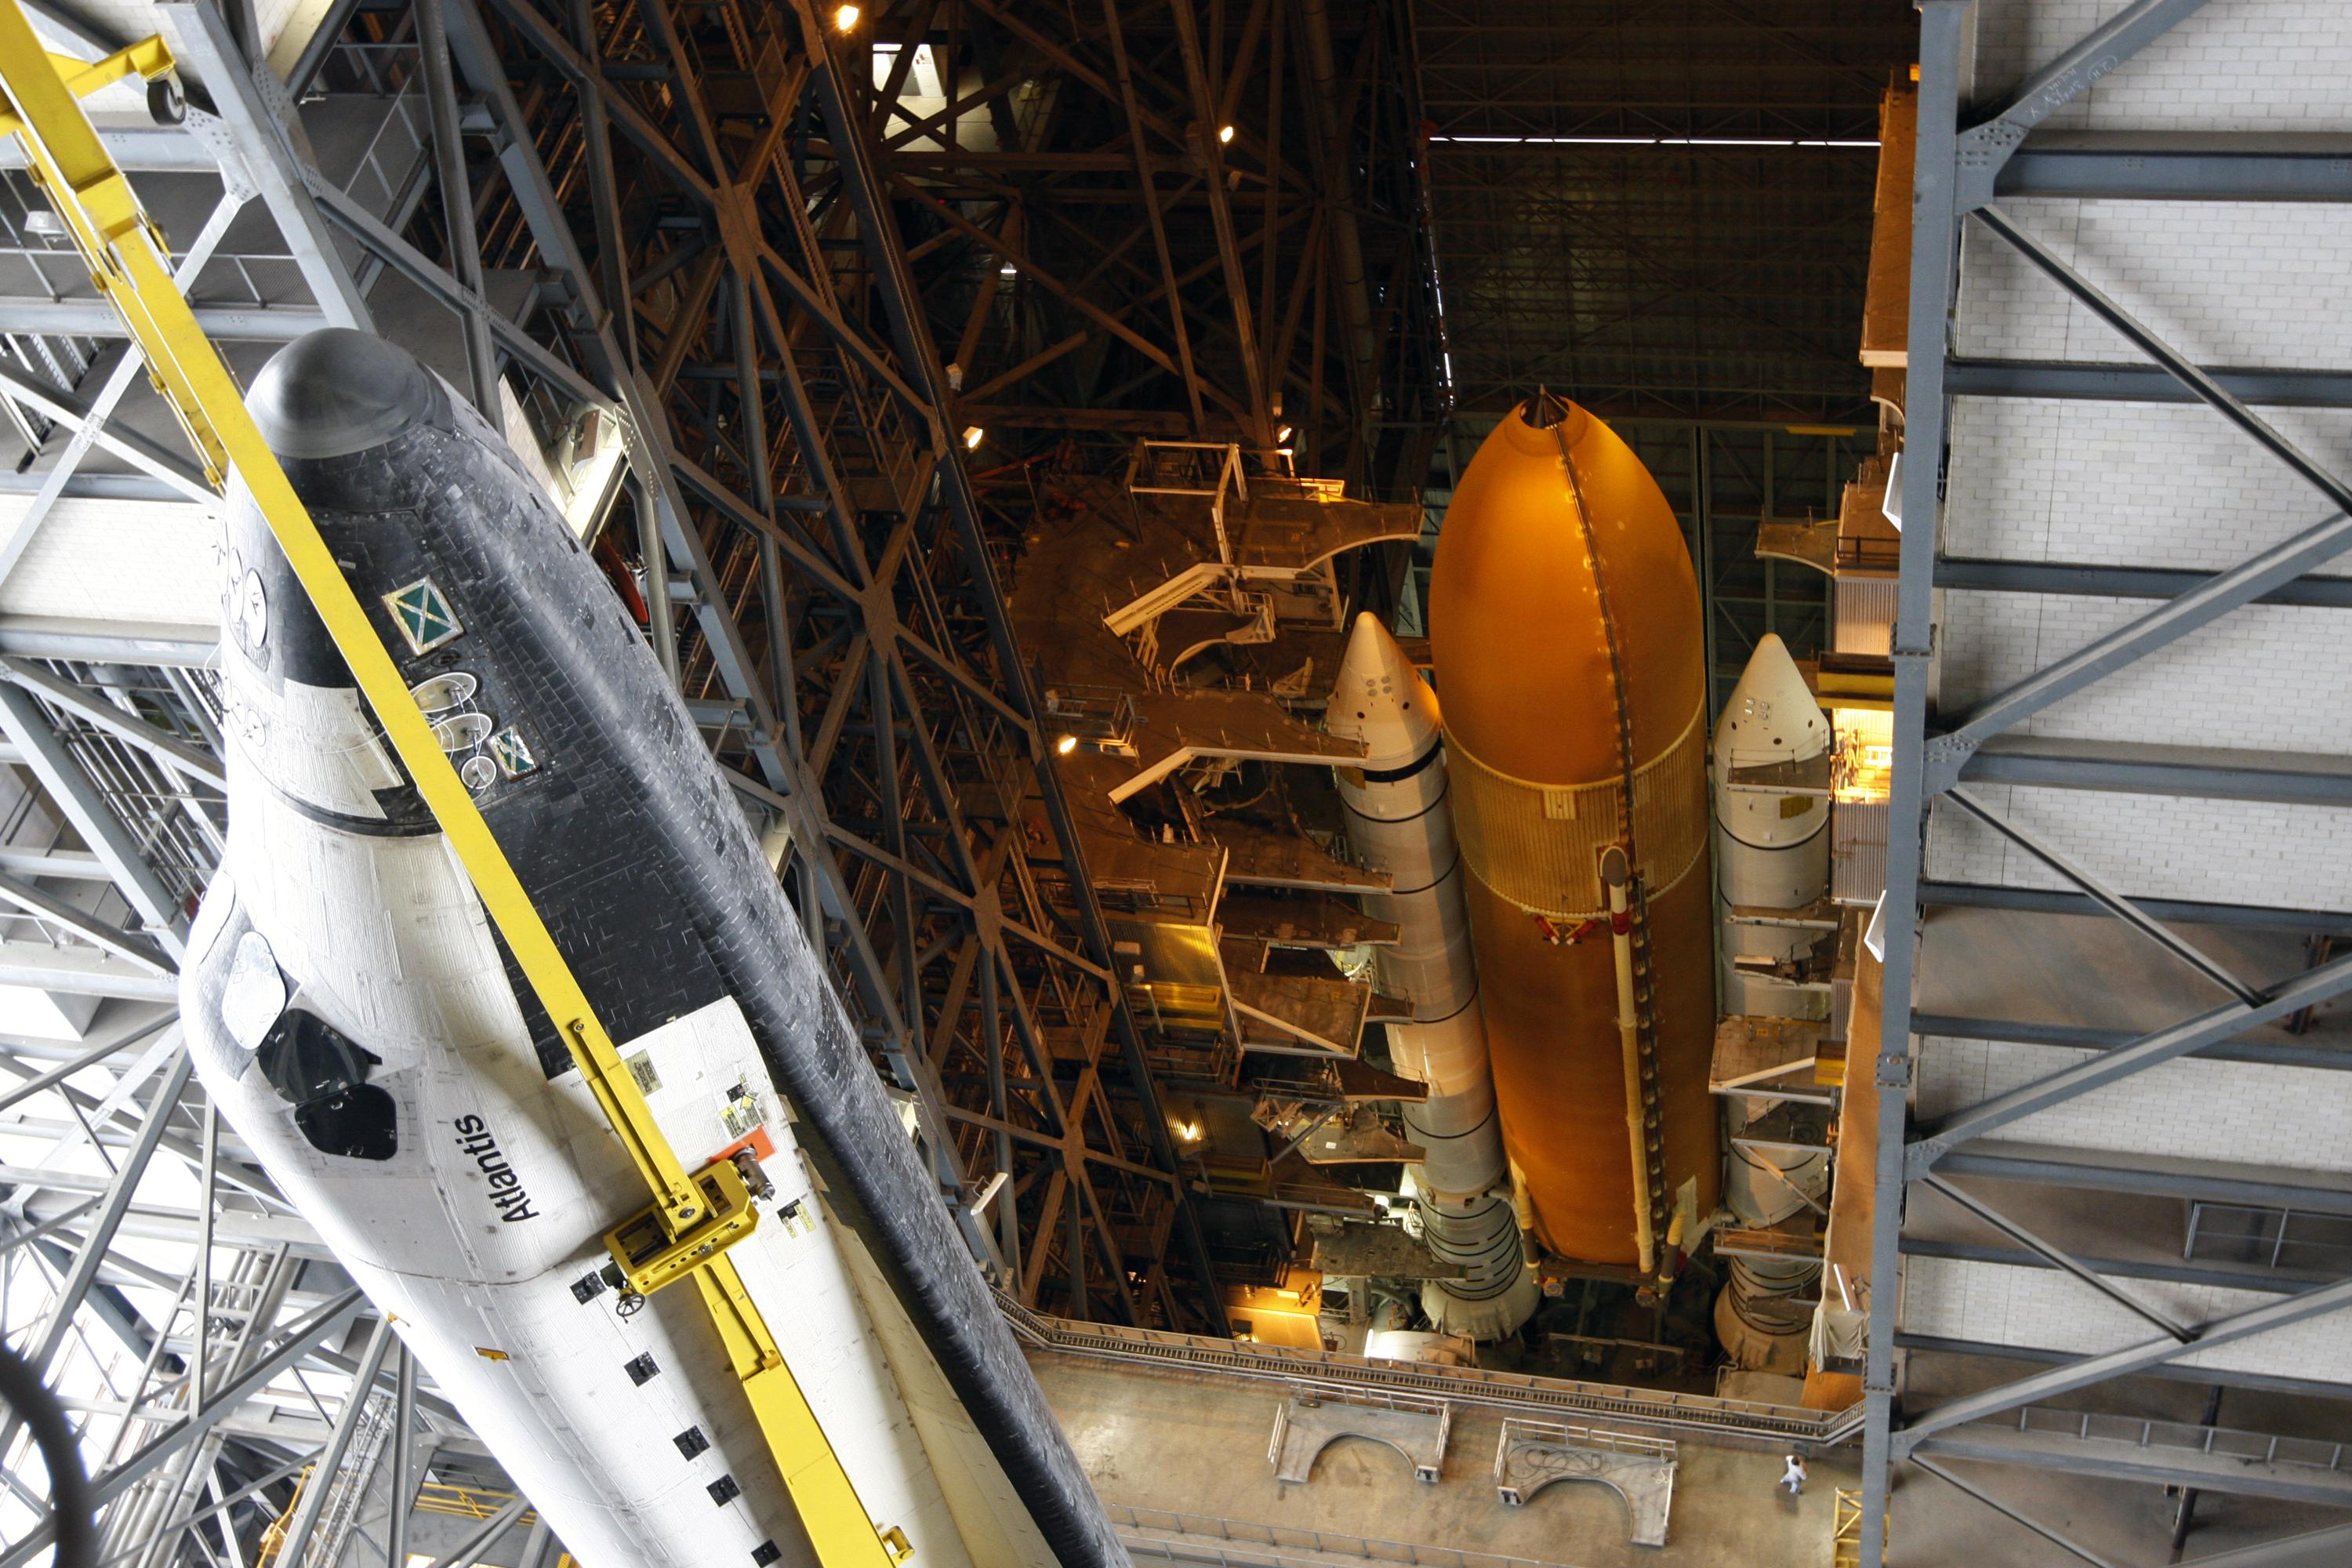 STS-125 Shuttle Atlantis assembly [1680x1050] | Source ...